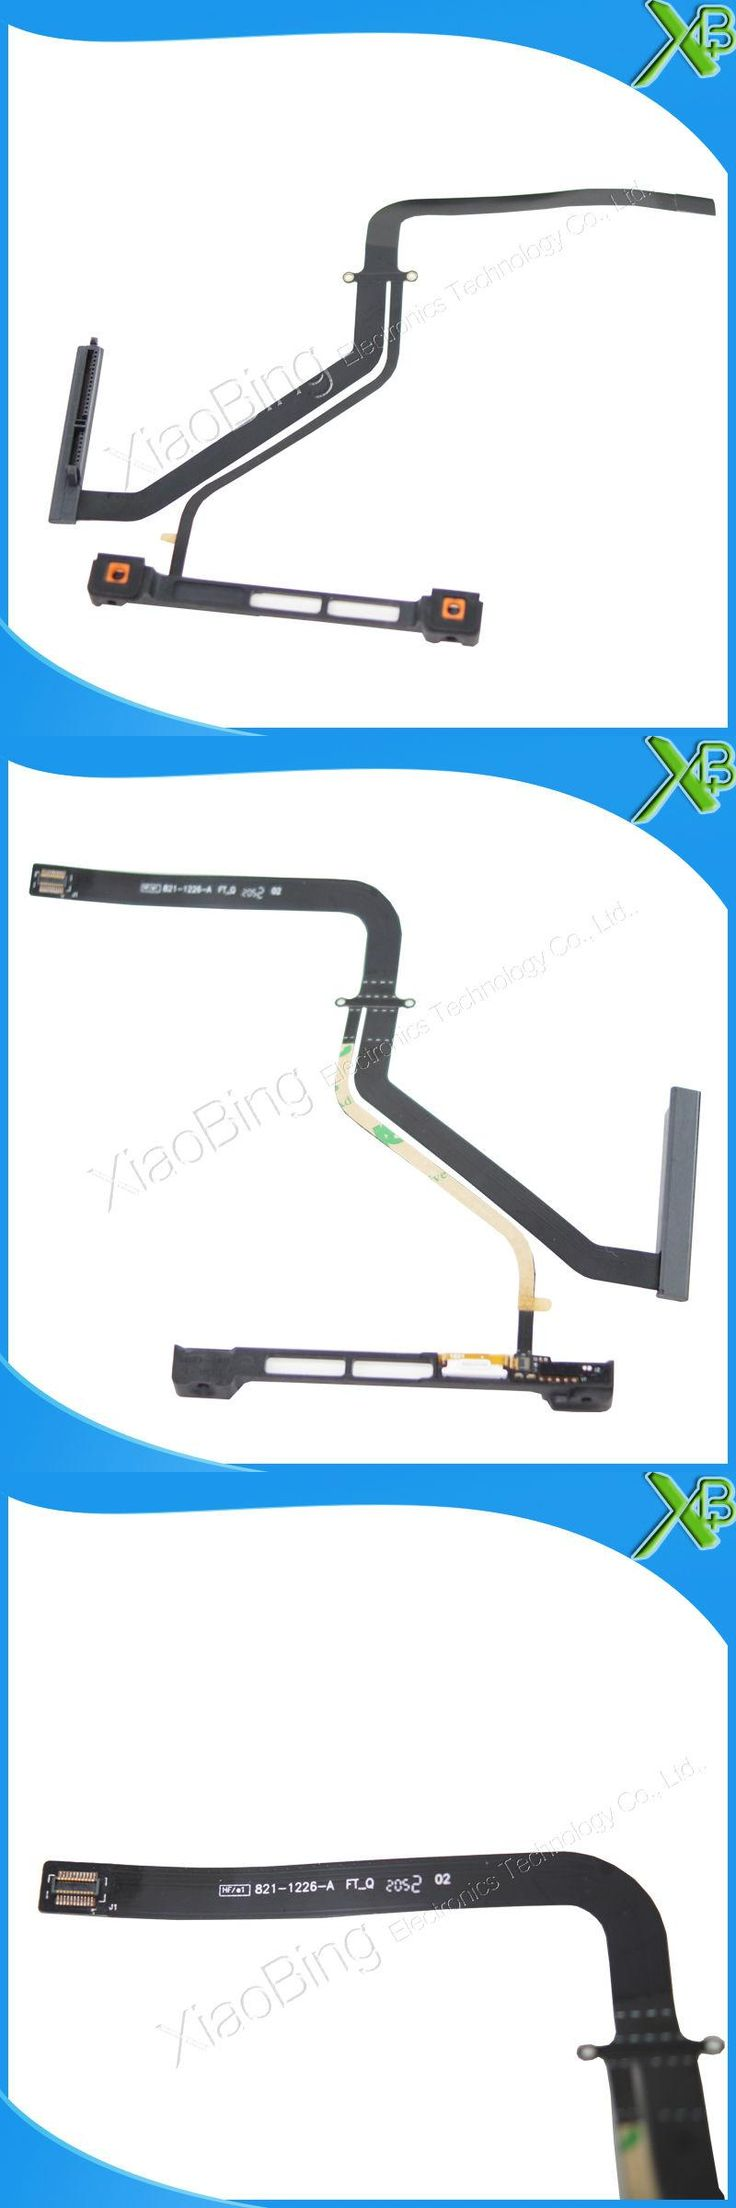 """Brand NEW HDD Hard Drive Disk Cable with Bracket For Macbook Pro A1278 13.3"""" MC700 Hdd calbe 821-1226-A Mid 2011 Years"""